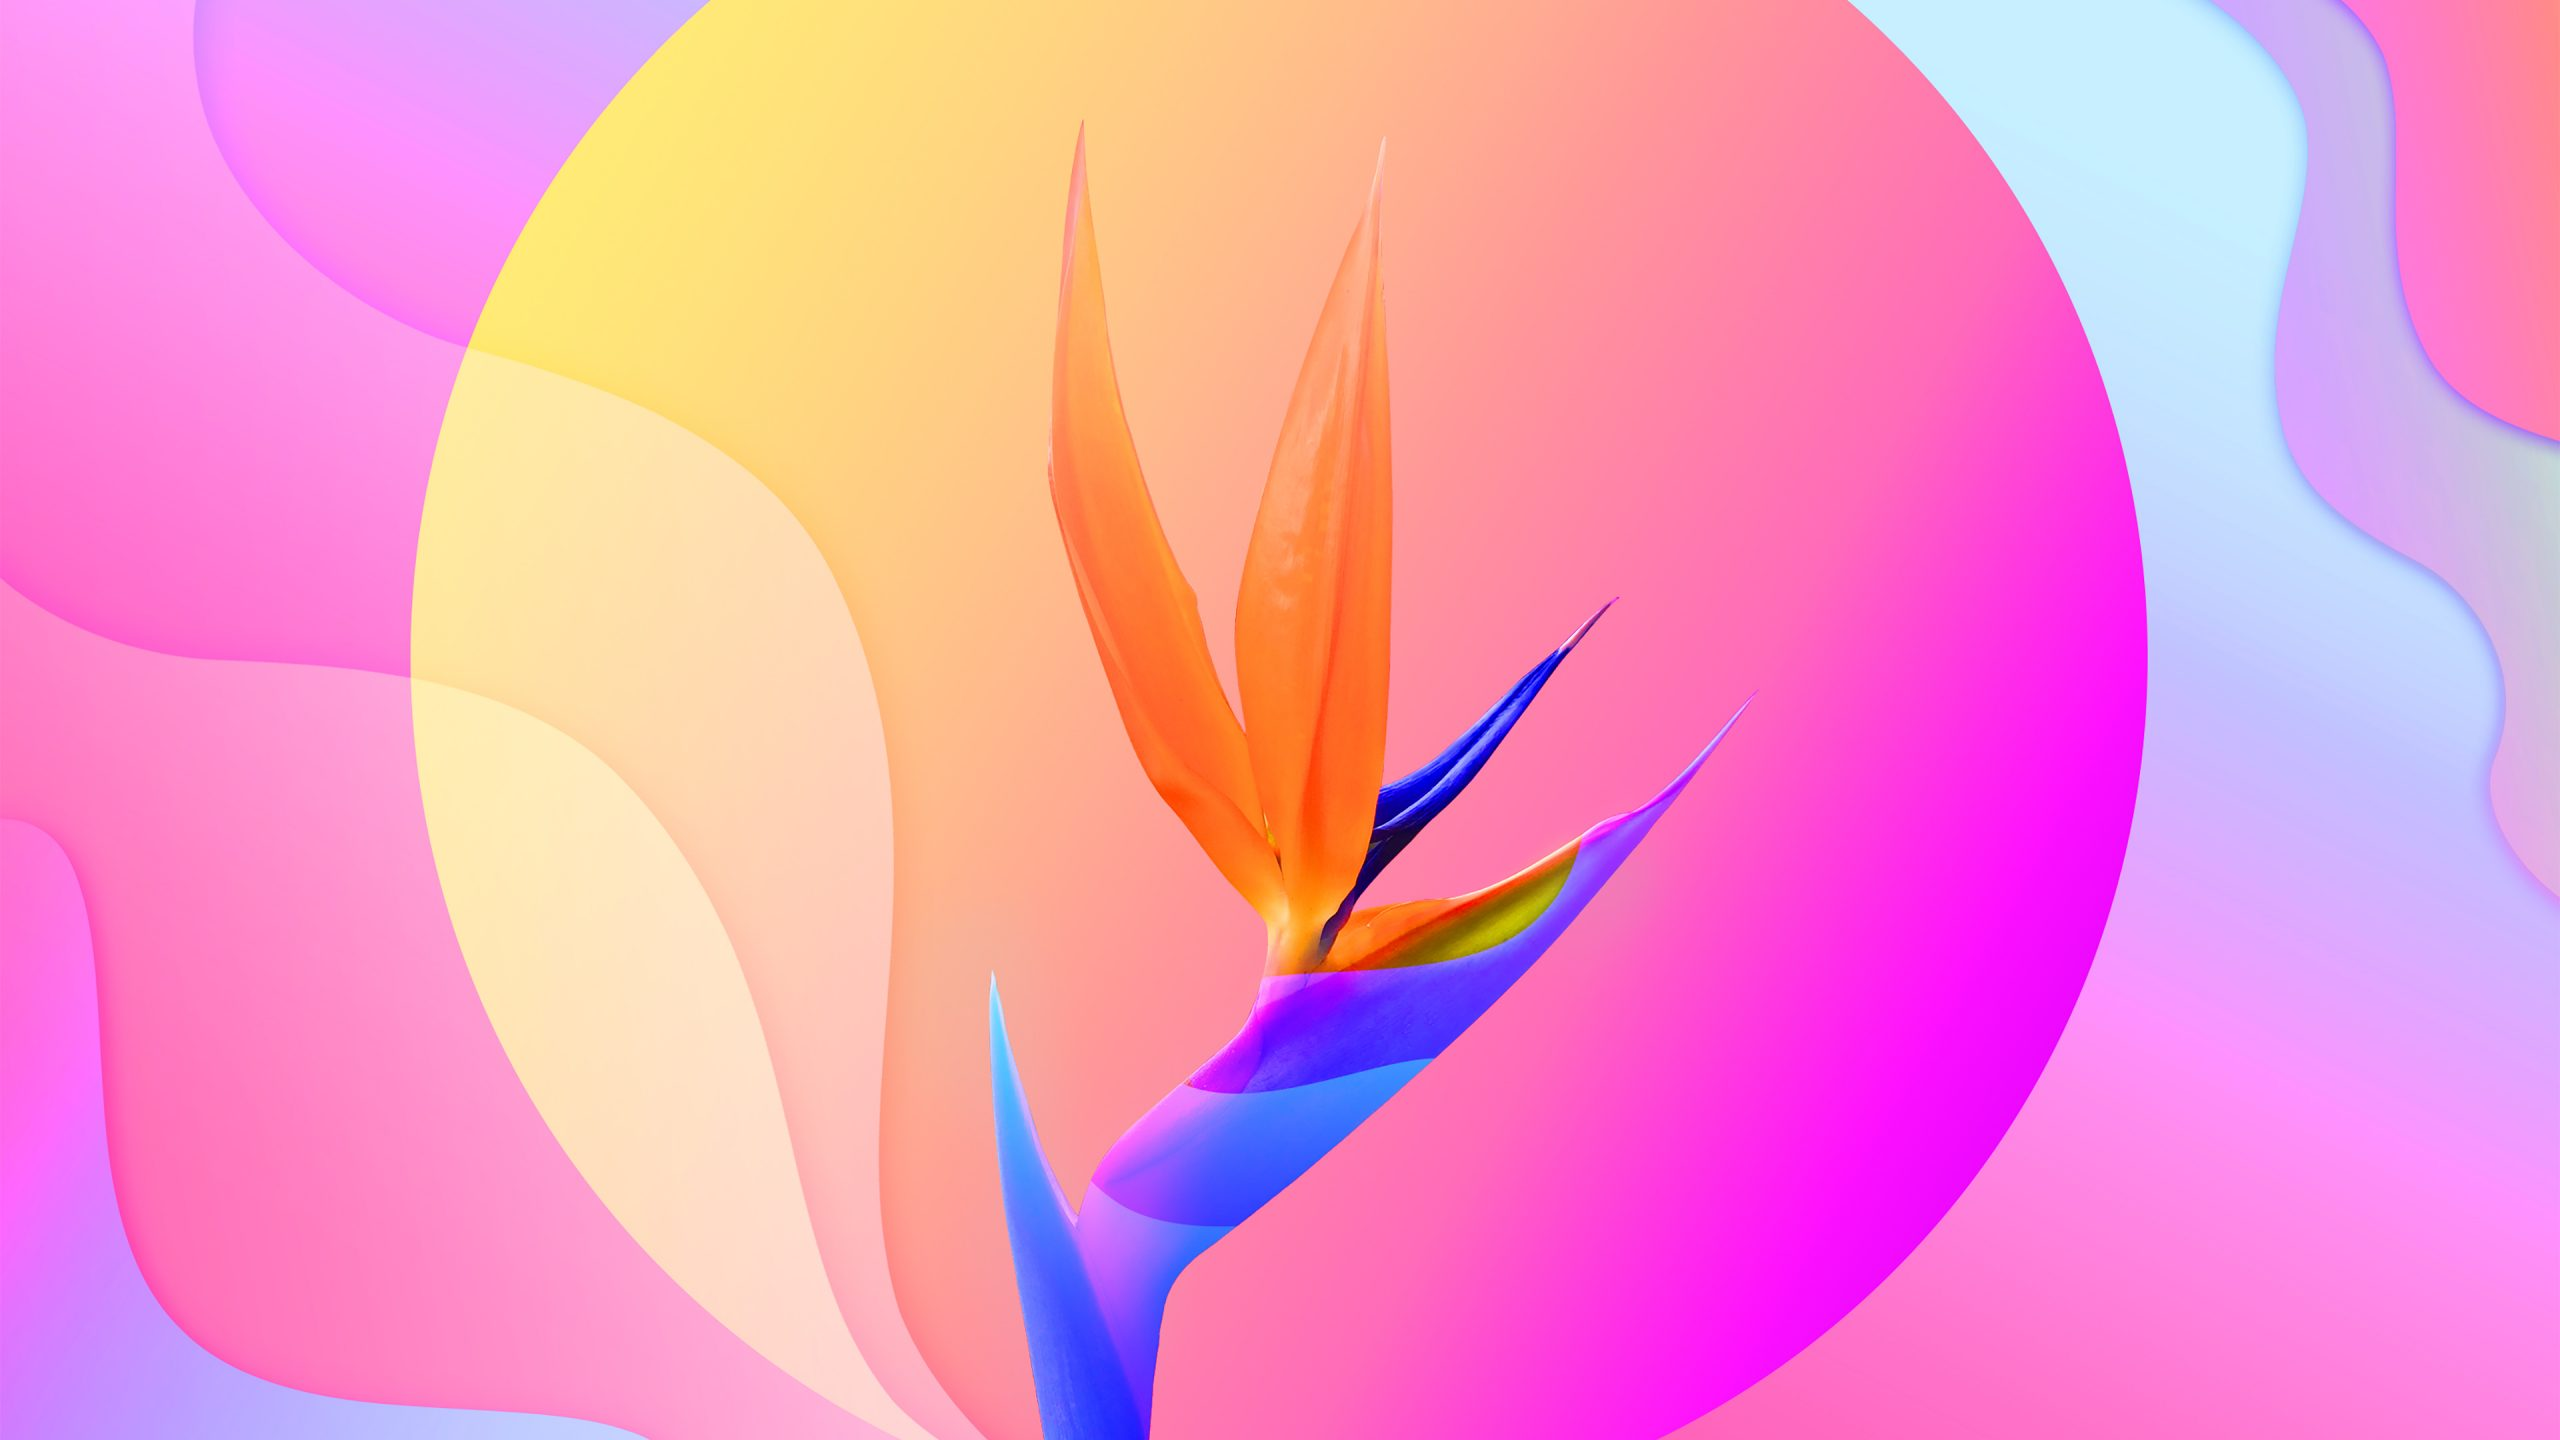 colorful-abstract-flower-4k-hd-wallpaper